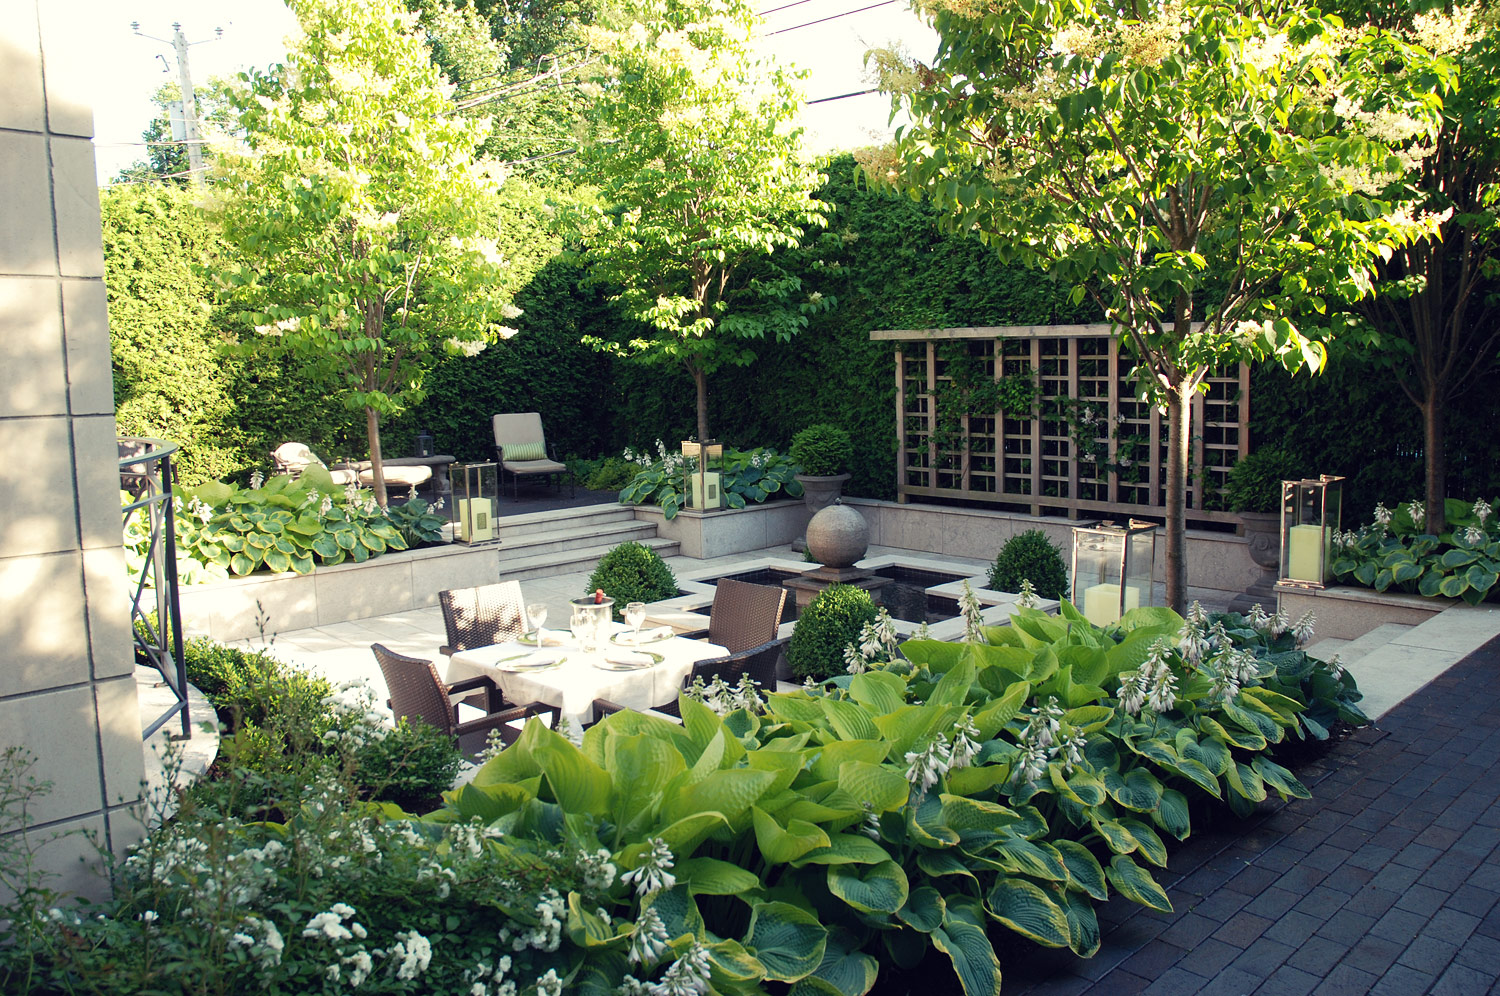 Gouin hodgins and associates landscape design services for Landscape design services